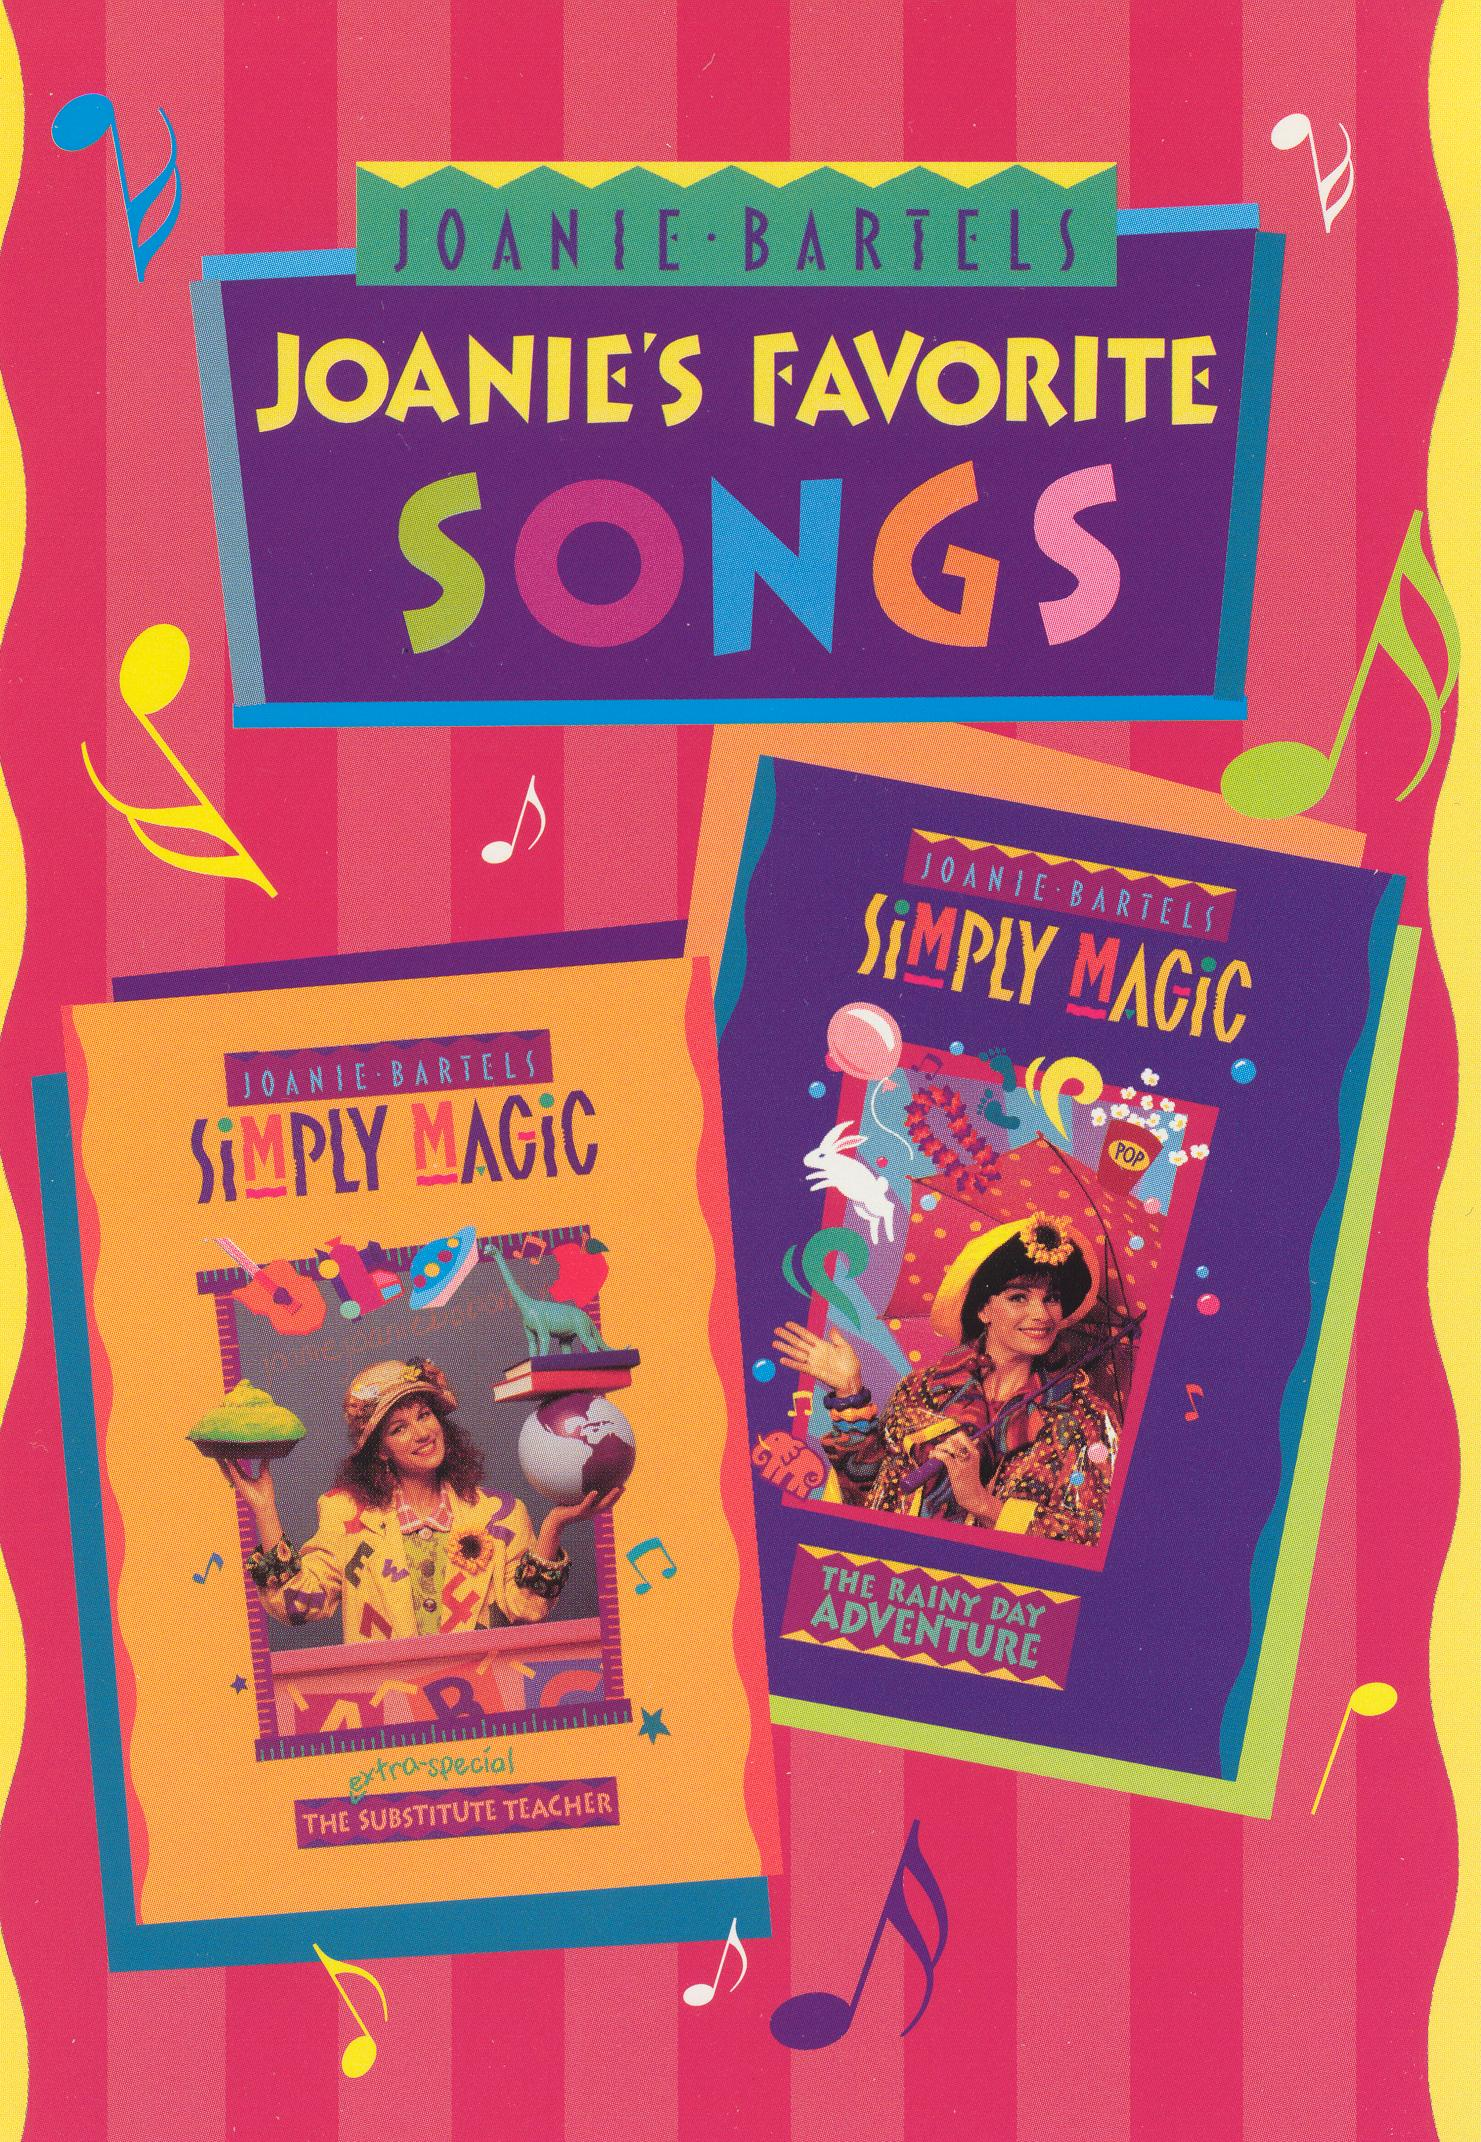 Joanie Bartles: Favorite Songs